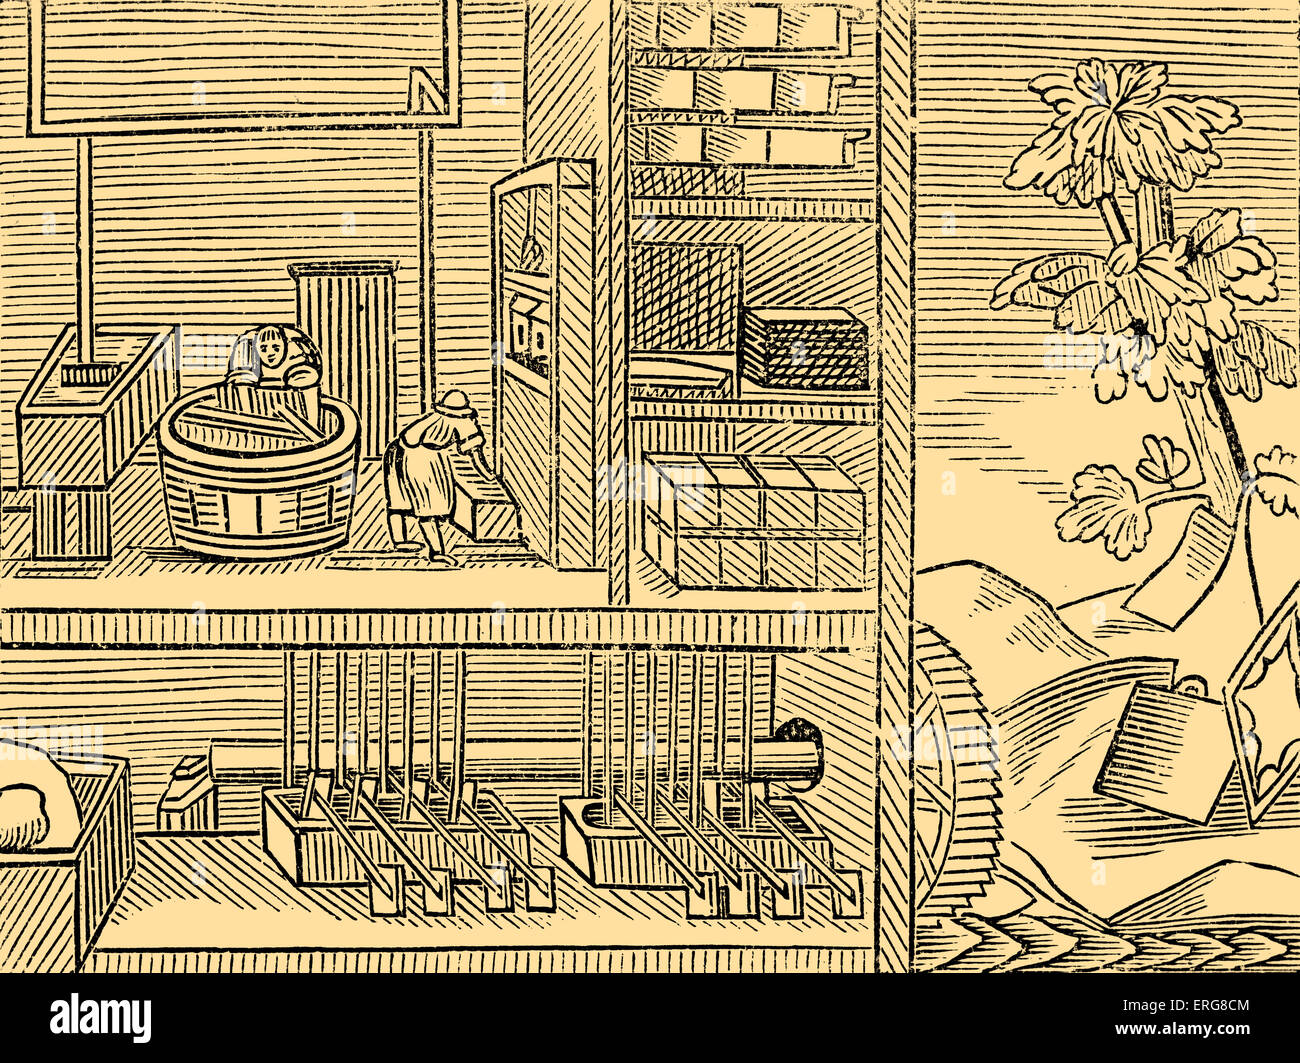 Paper-makers, taken from a 1659 English edition of John Amos Comenius' 'Orbis sensualium pictus', probably the most Stock Photo